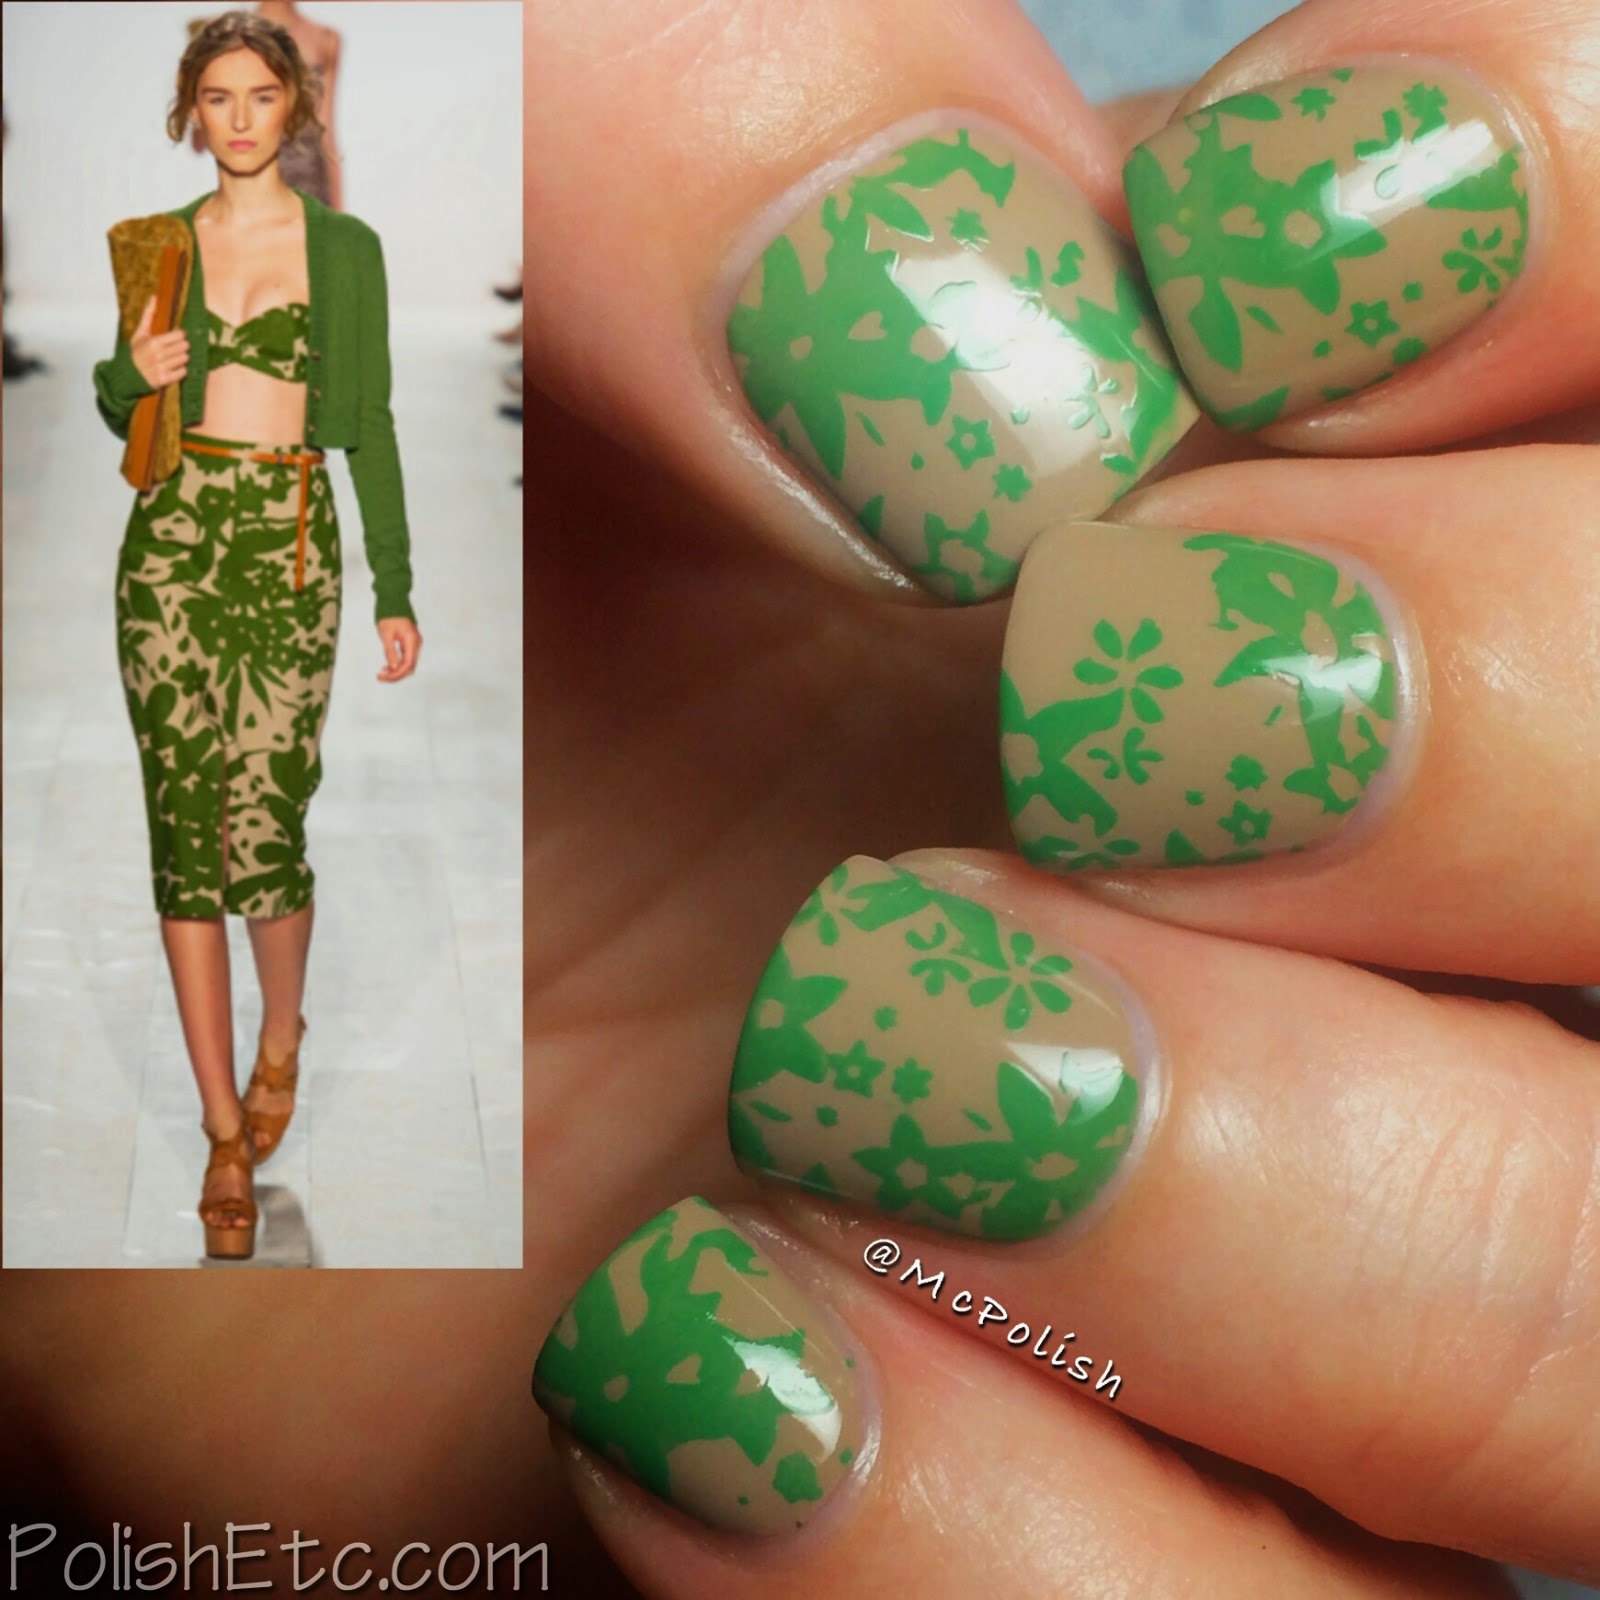 31 Day Nail Art Challenge -#31dc2014 - McPolish - FASHION